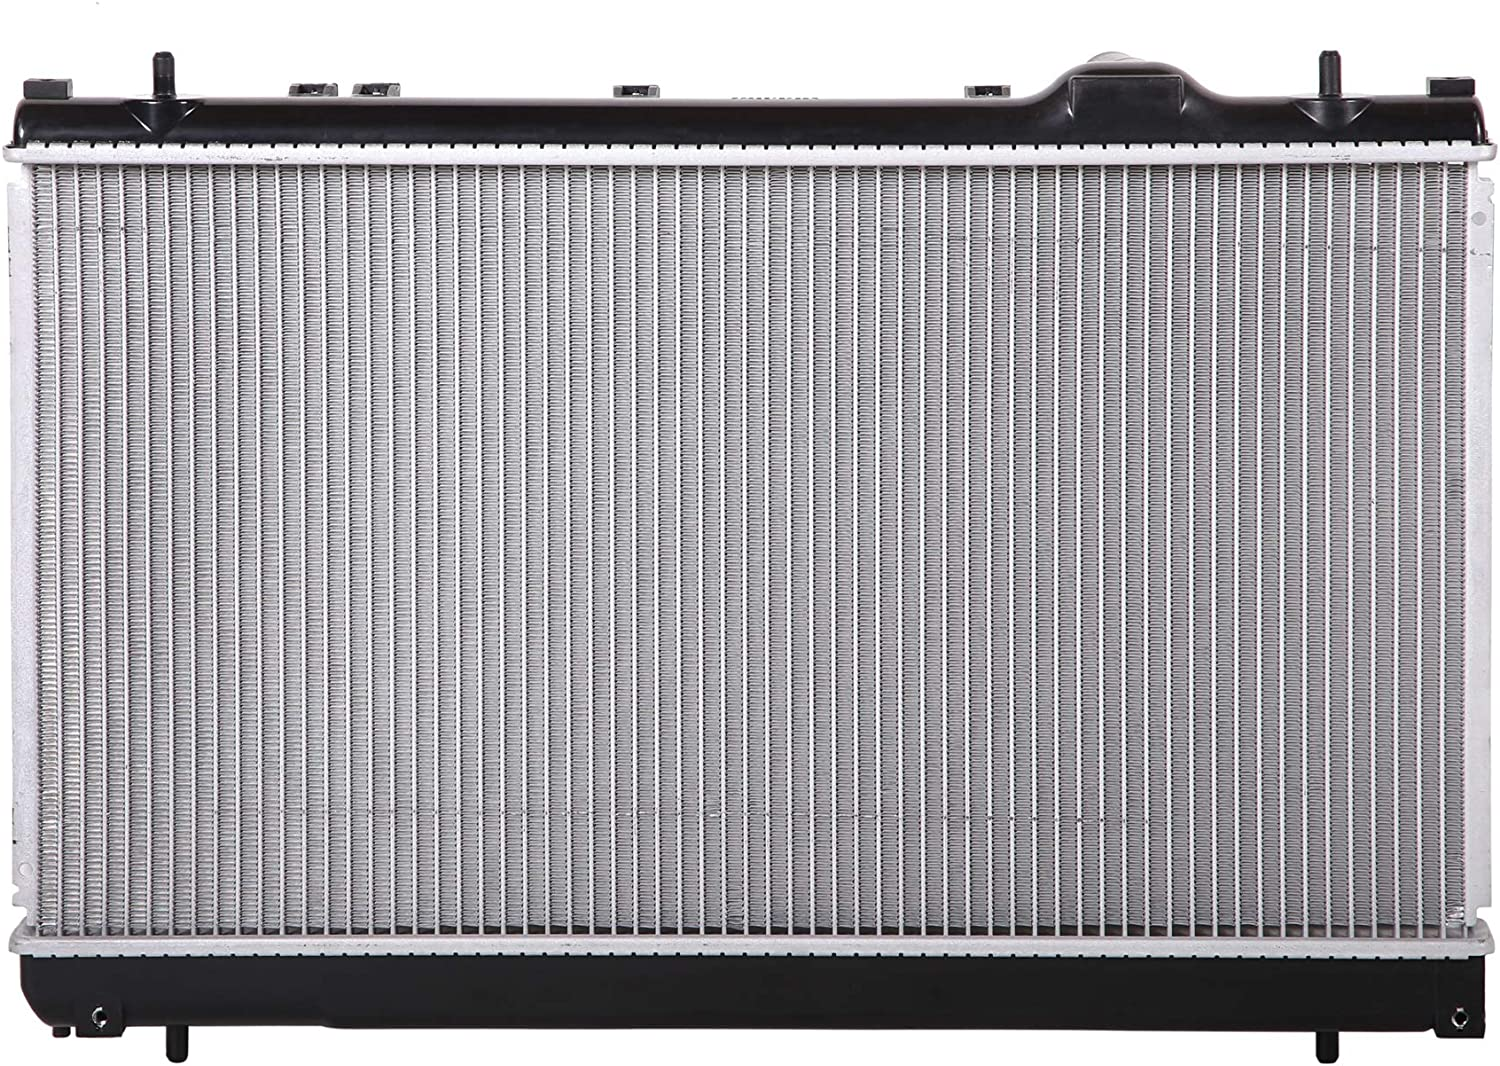 Lynol Cooling System Complete Aluminum Radiator Direct Replacement Compatible With 2002-2004 Dodge Neon 4 Speed Transmission With Dual Cooling Fan Type 4 Cylinder 2.0L